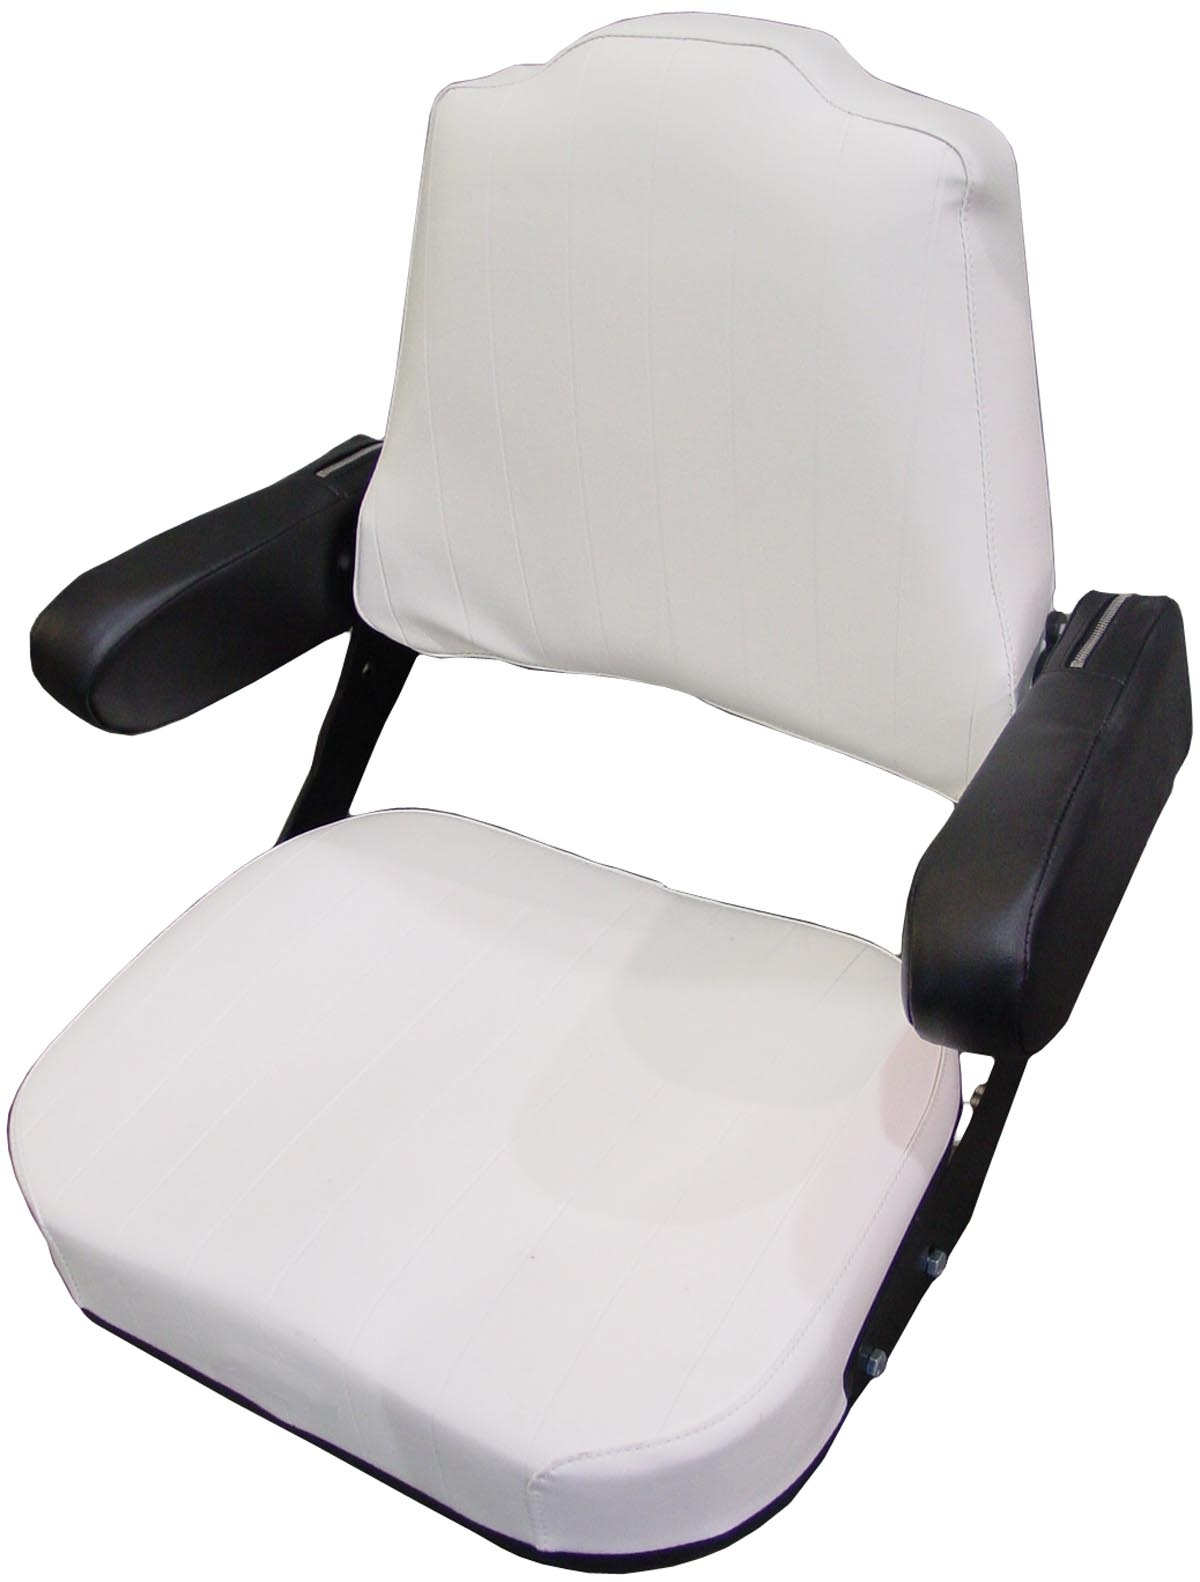 SEAT ASSEMBLY WITH ARMRESTS RESTORATION QUALITY